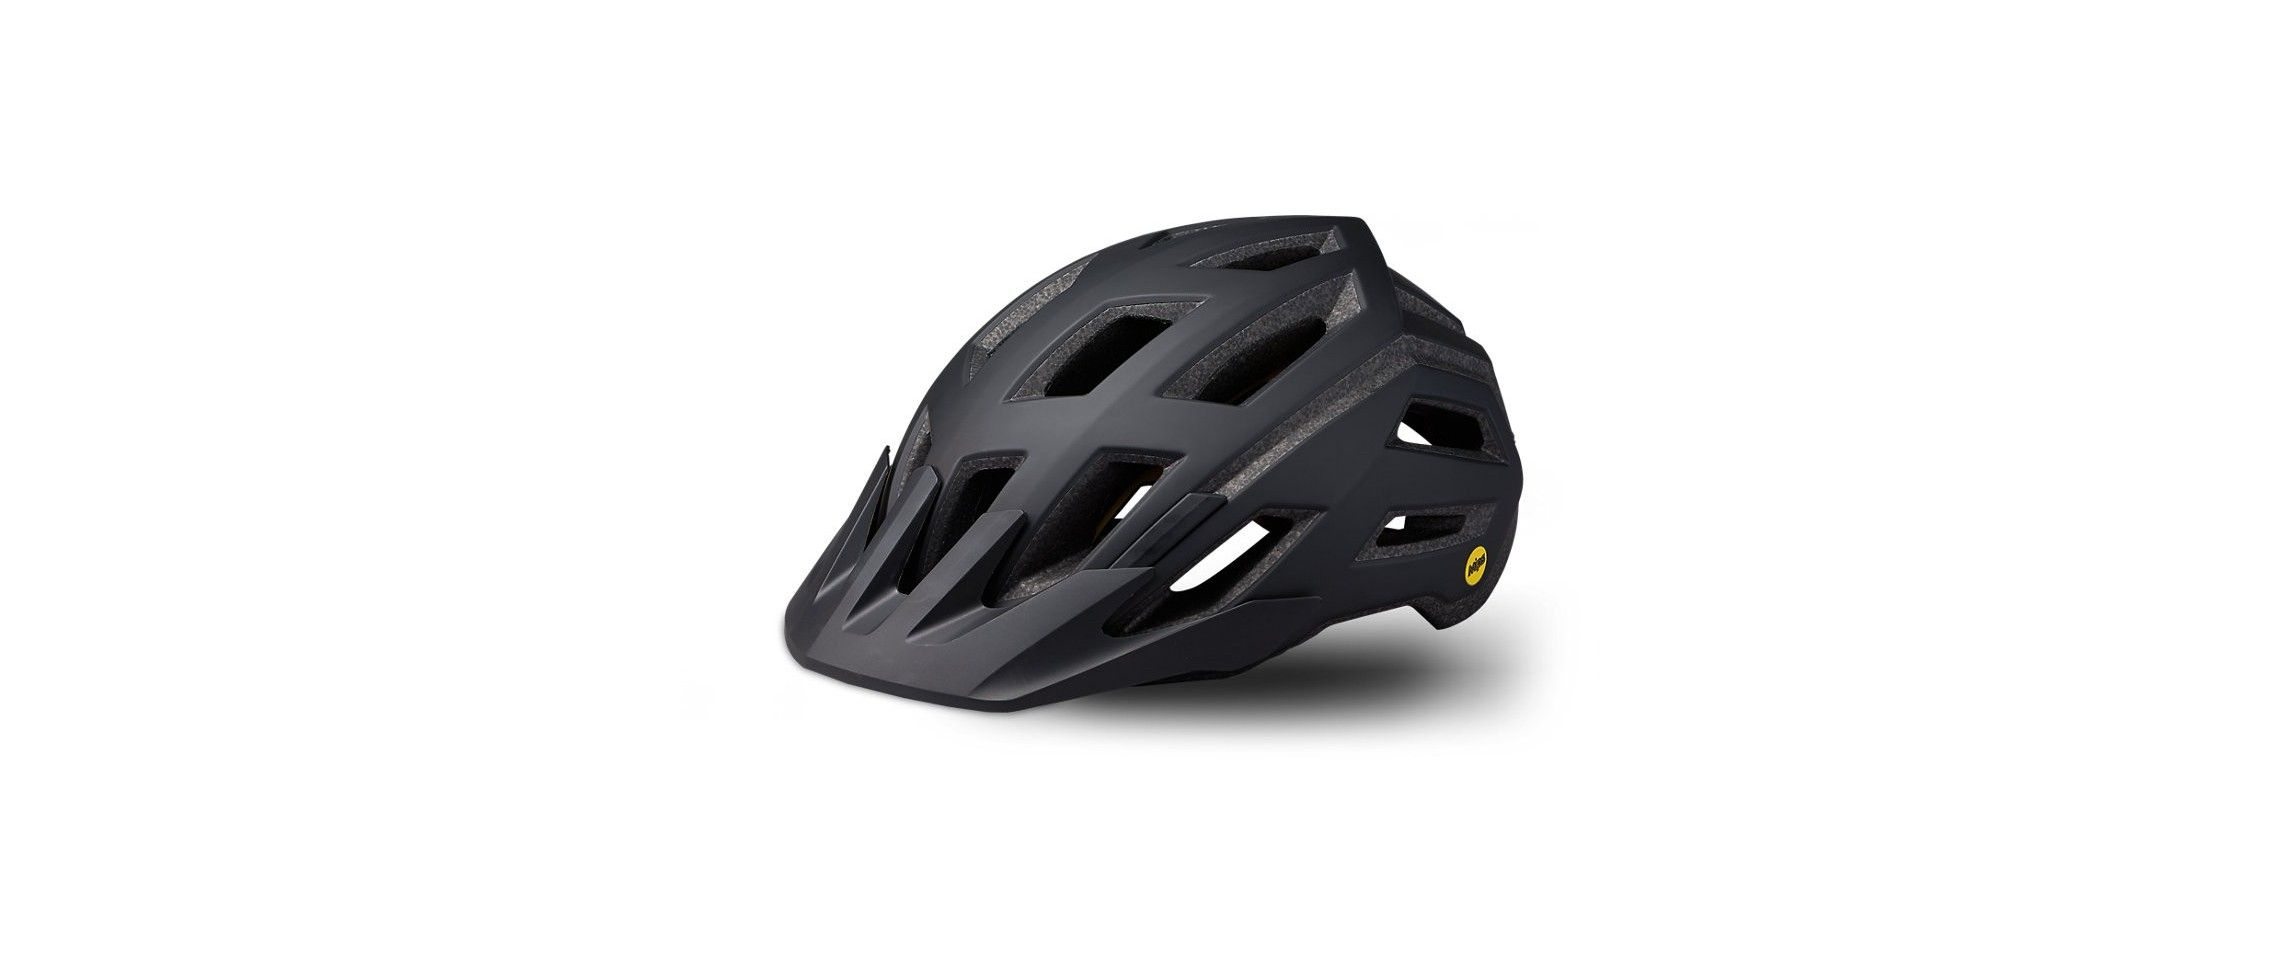 Tactic III Angi Mips Casco Ciclismo Mtb Specialized Negro Mate 1 IBKBike.es